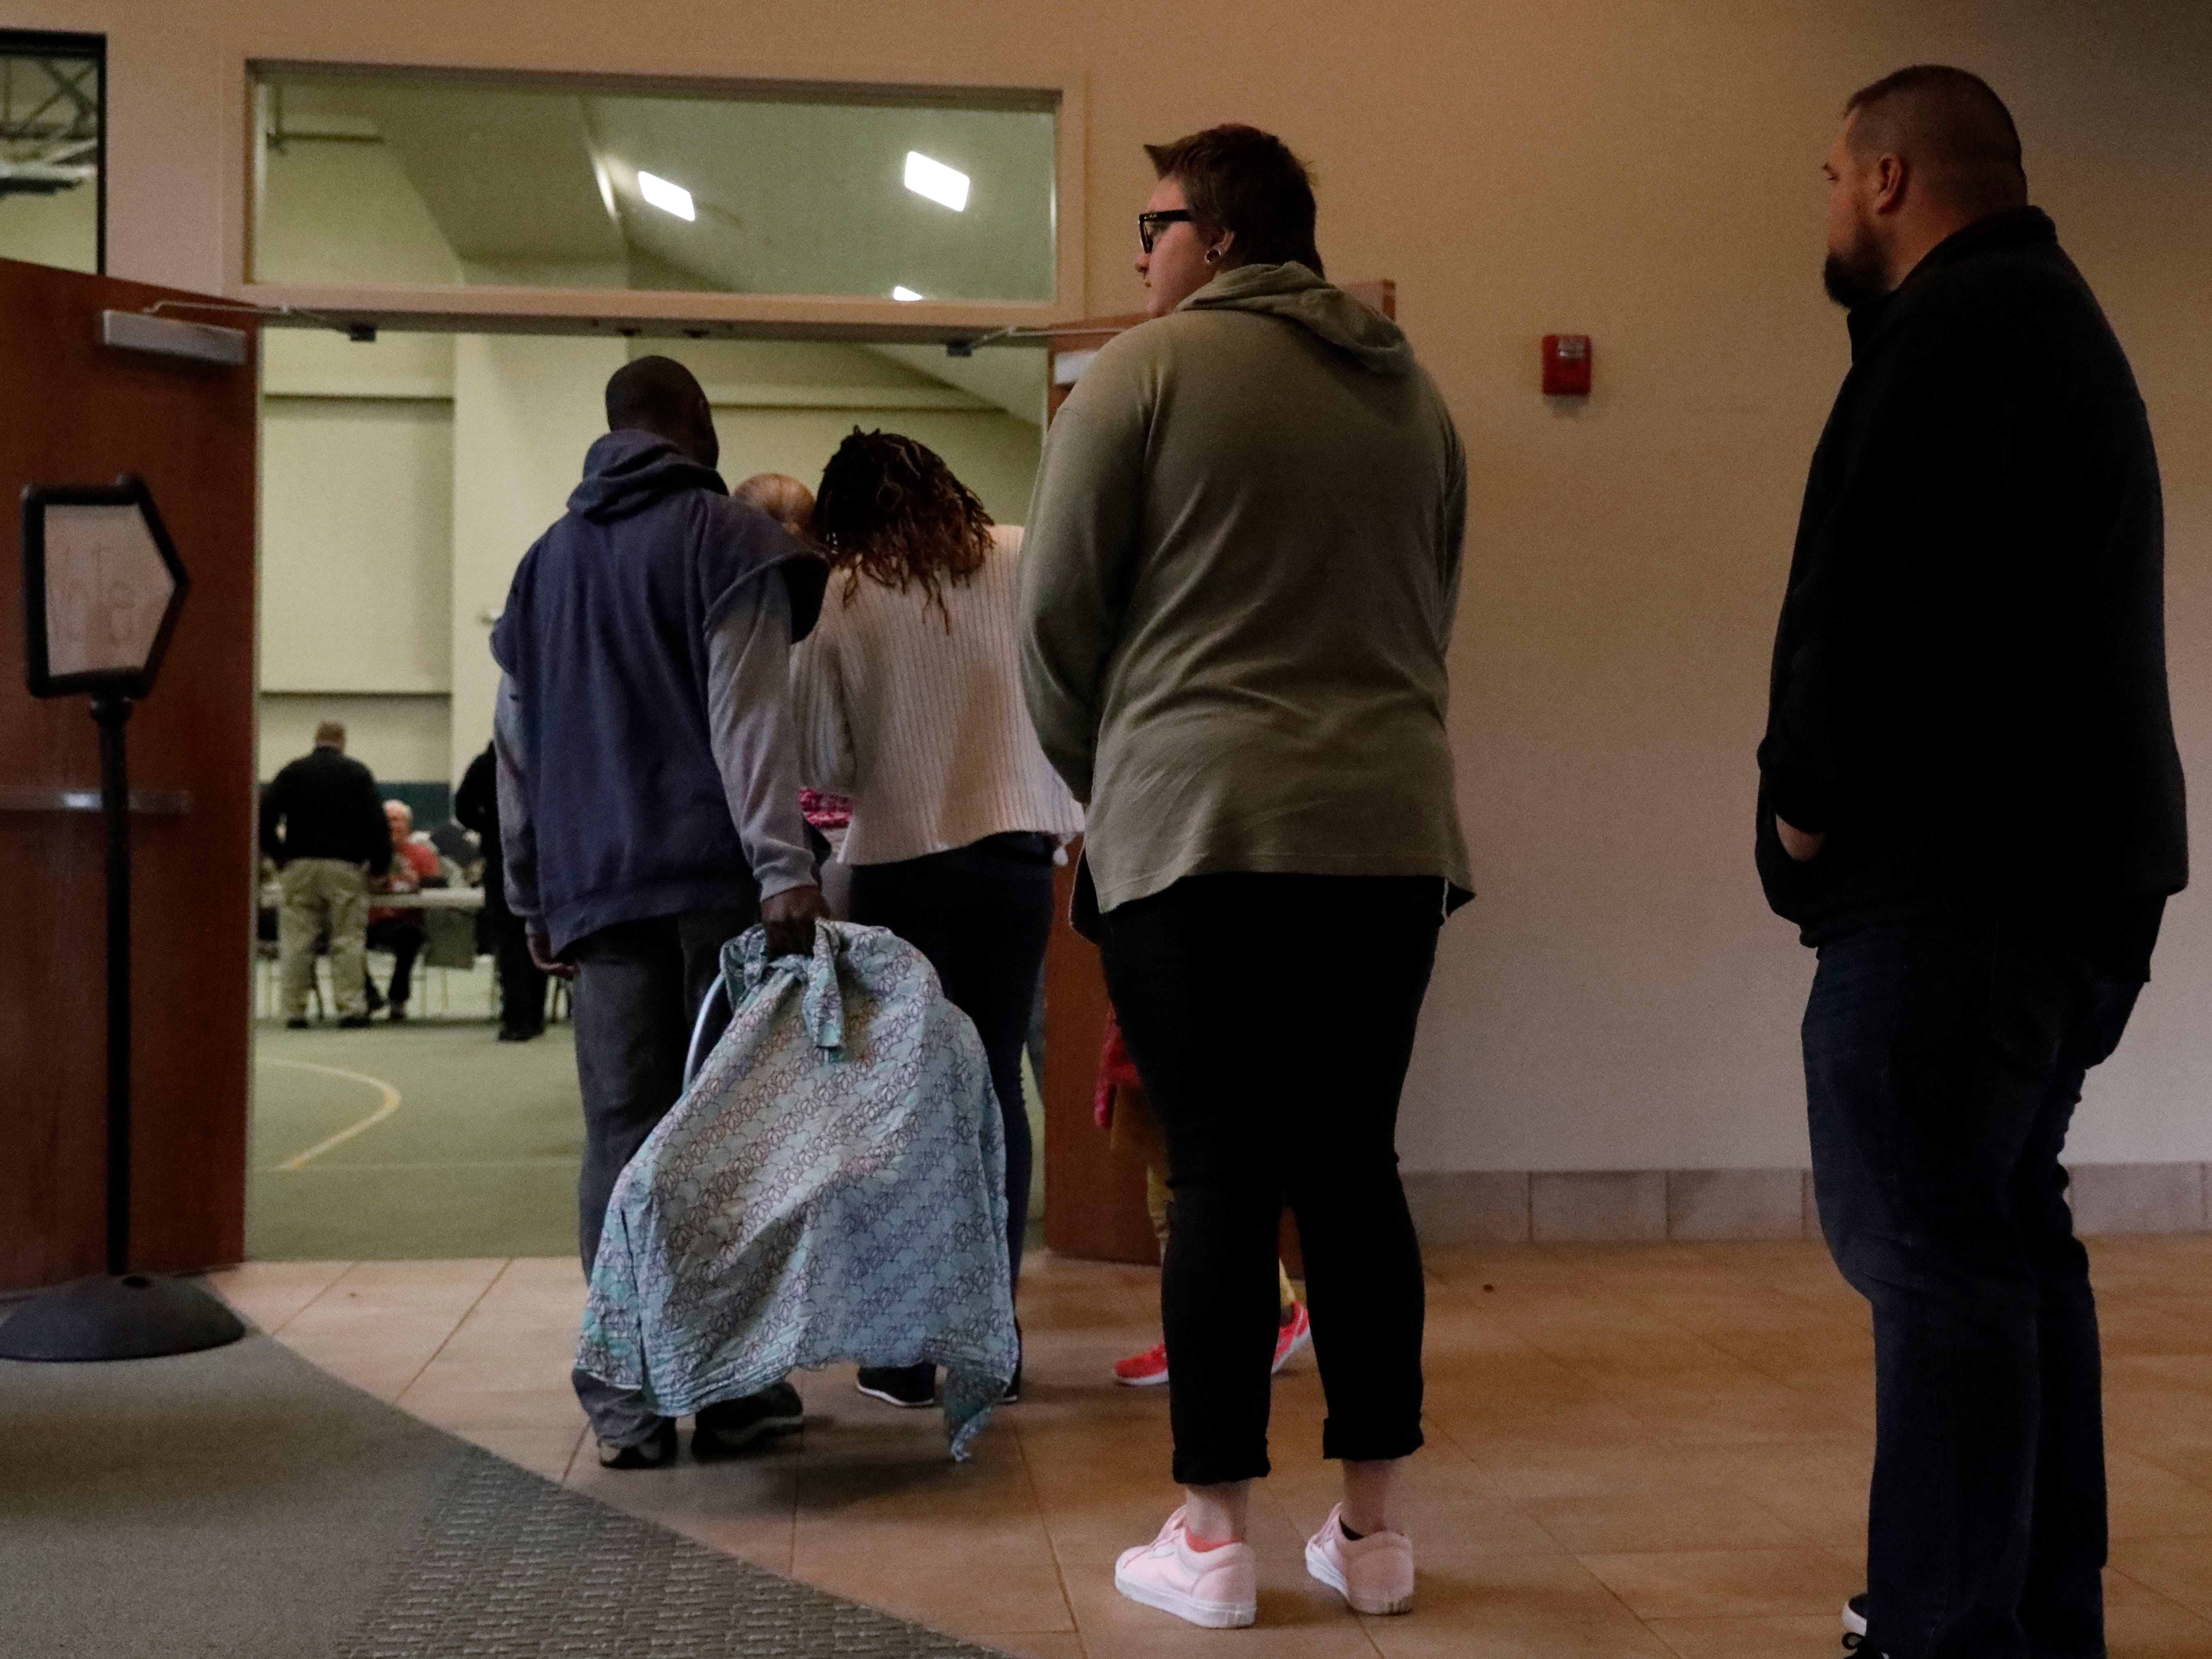 At midday voters had to wait in line for several minutes at the Crossroads Ministry Center Tuesday, Nov. 6, 2018, as they waited to vote in the midterm elections in Lancaster.